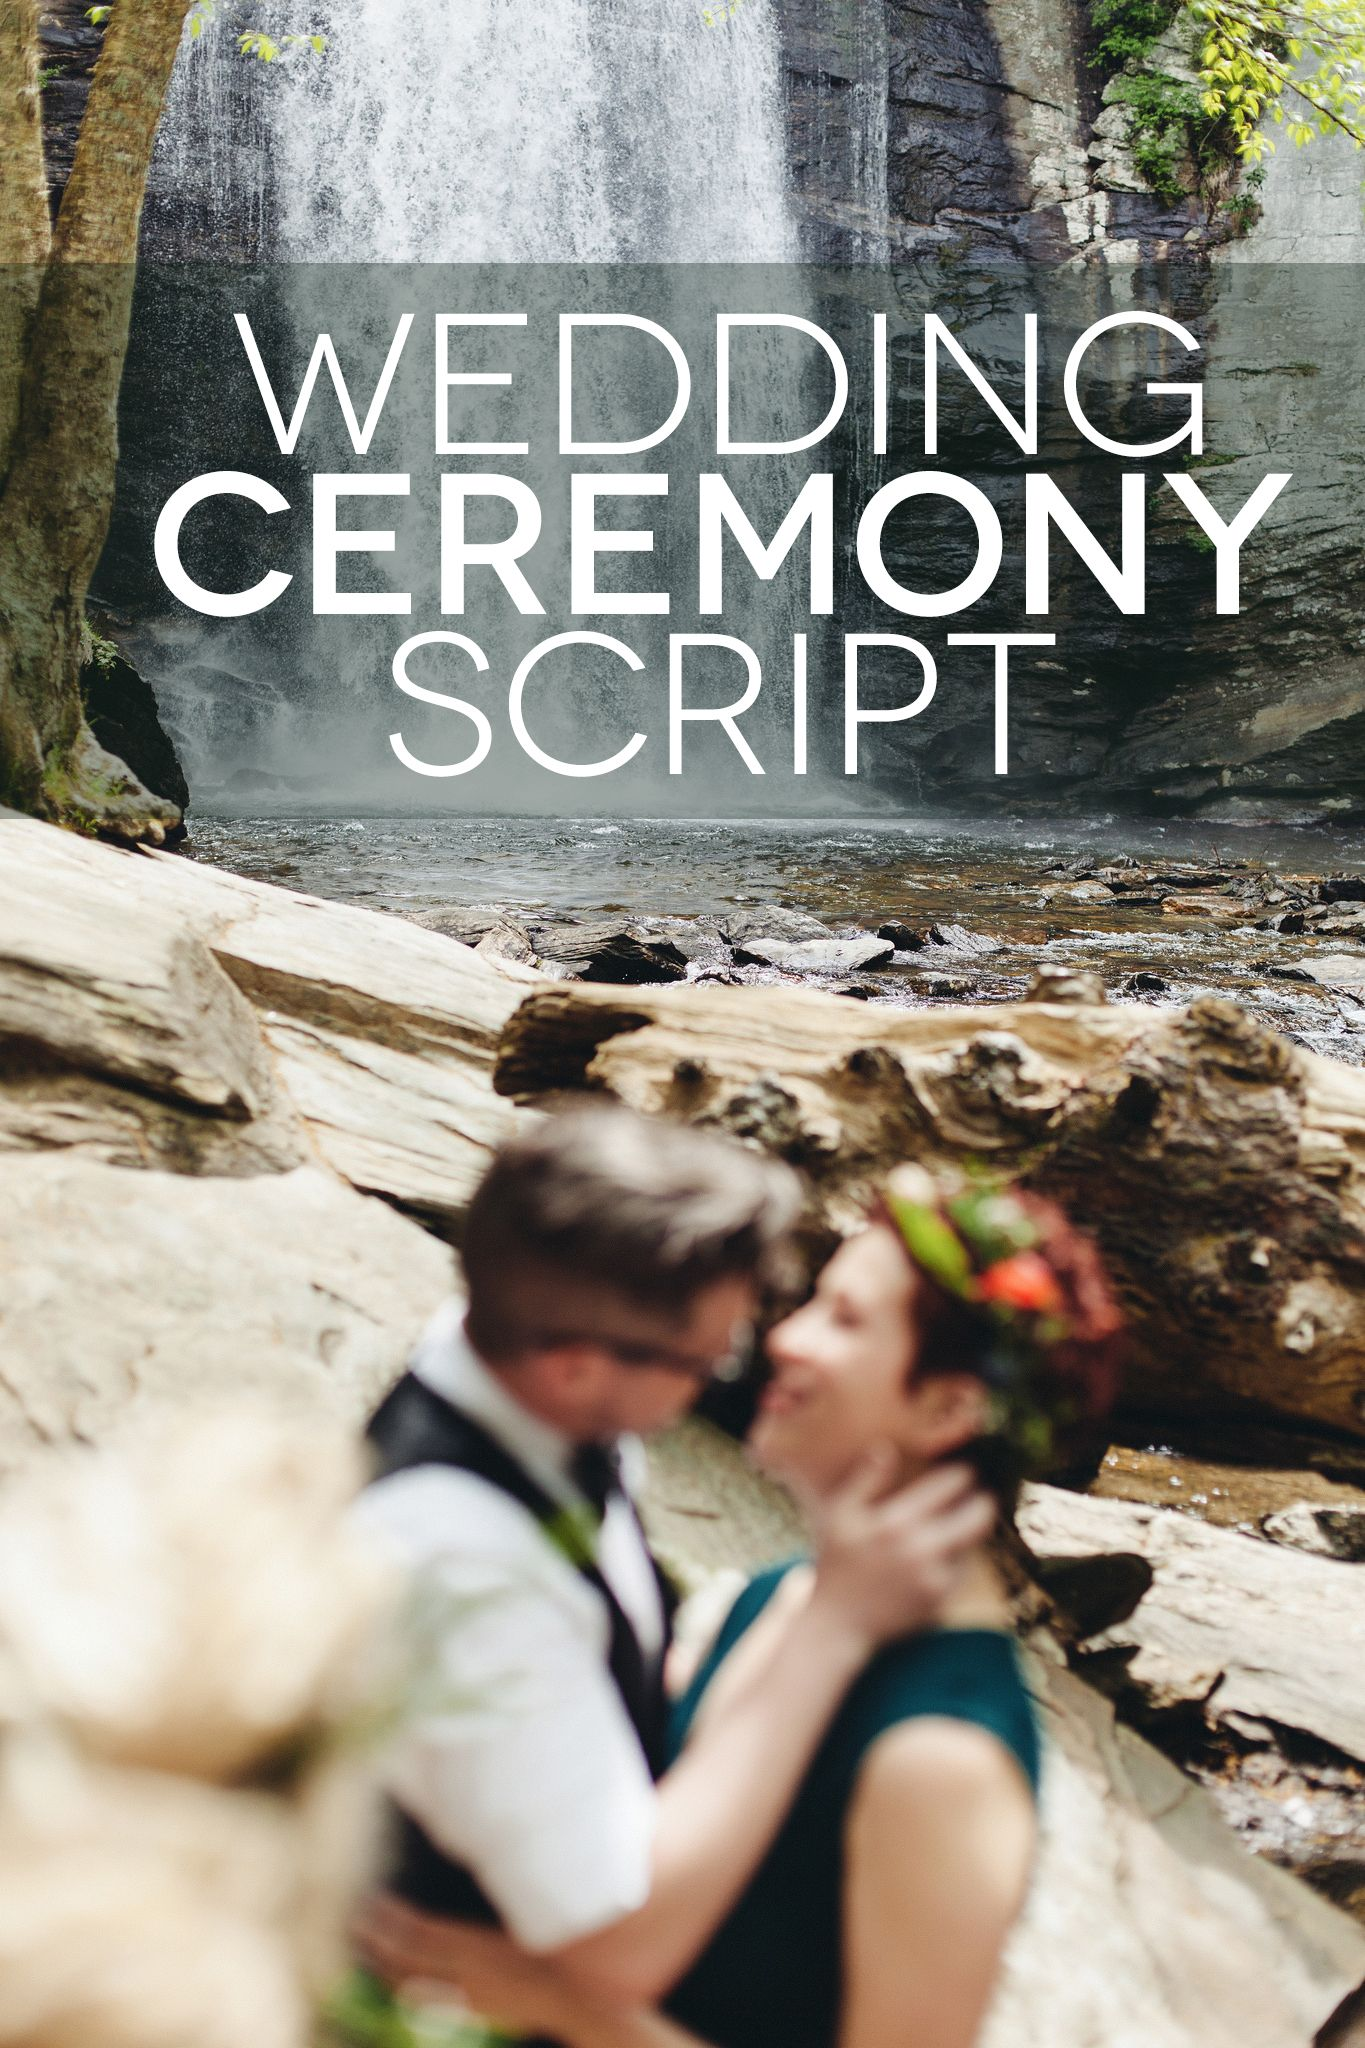 Wedding ceremony scripts for officiant - A Secular Wedding Ceremony Script That Will Bring On The Feelings